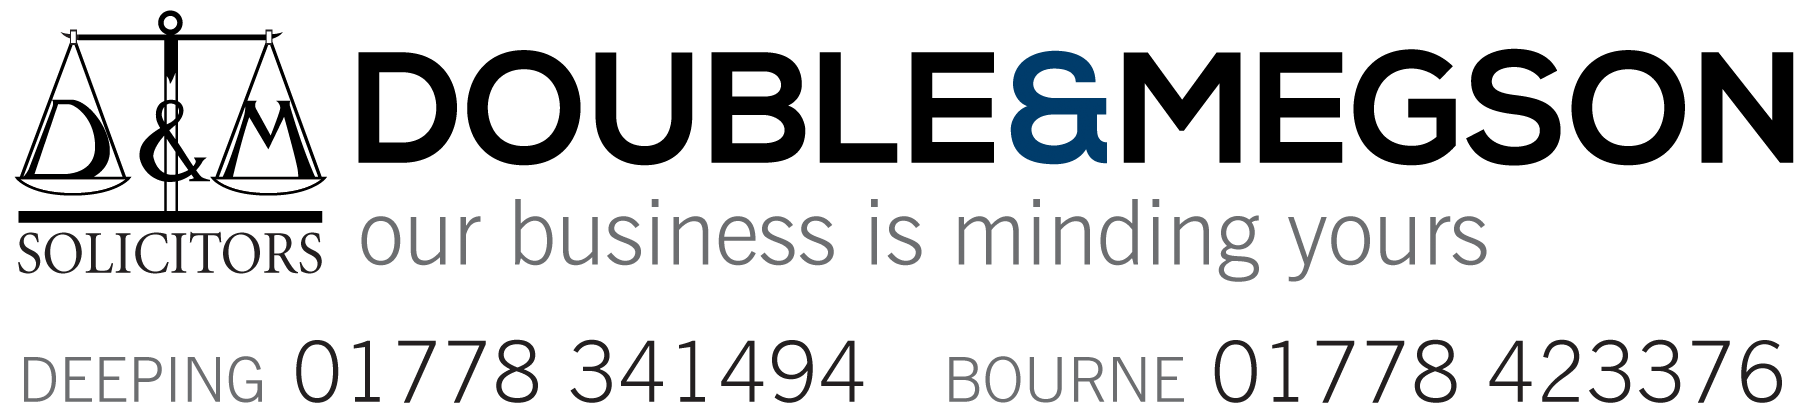 Double and Megson Solicitors